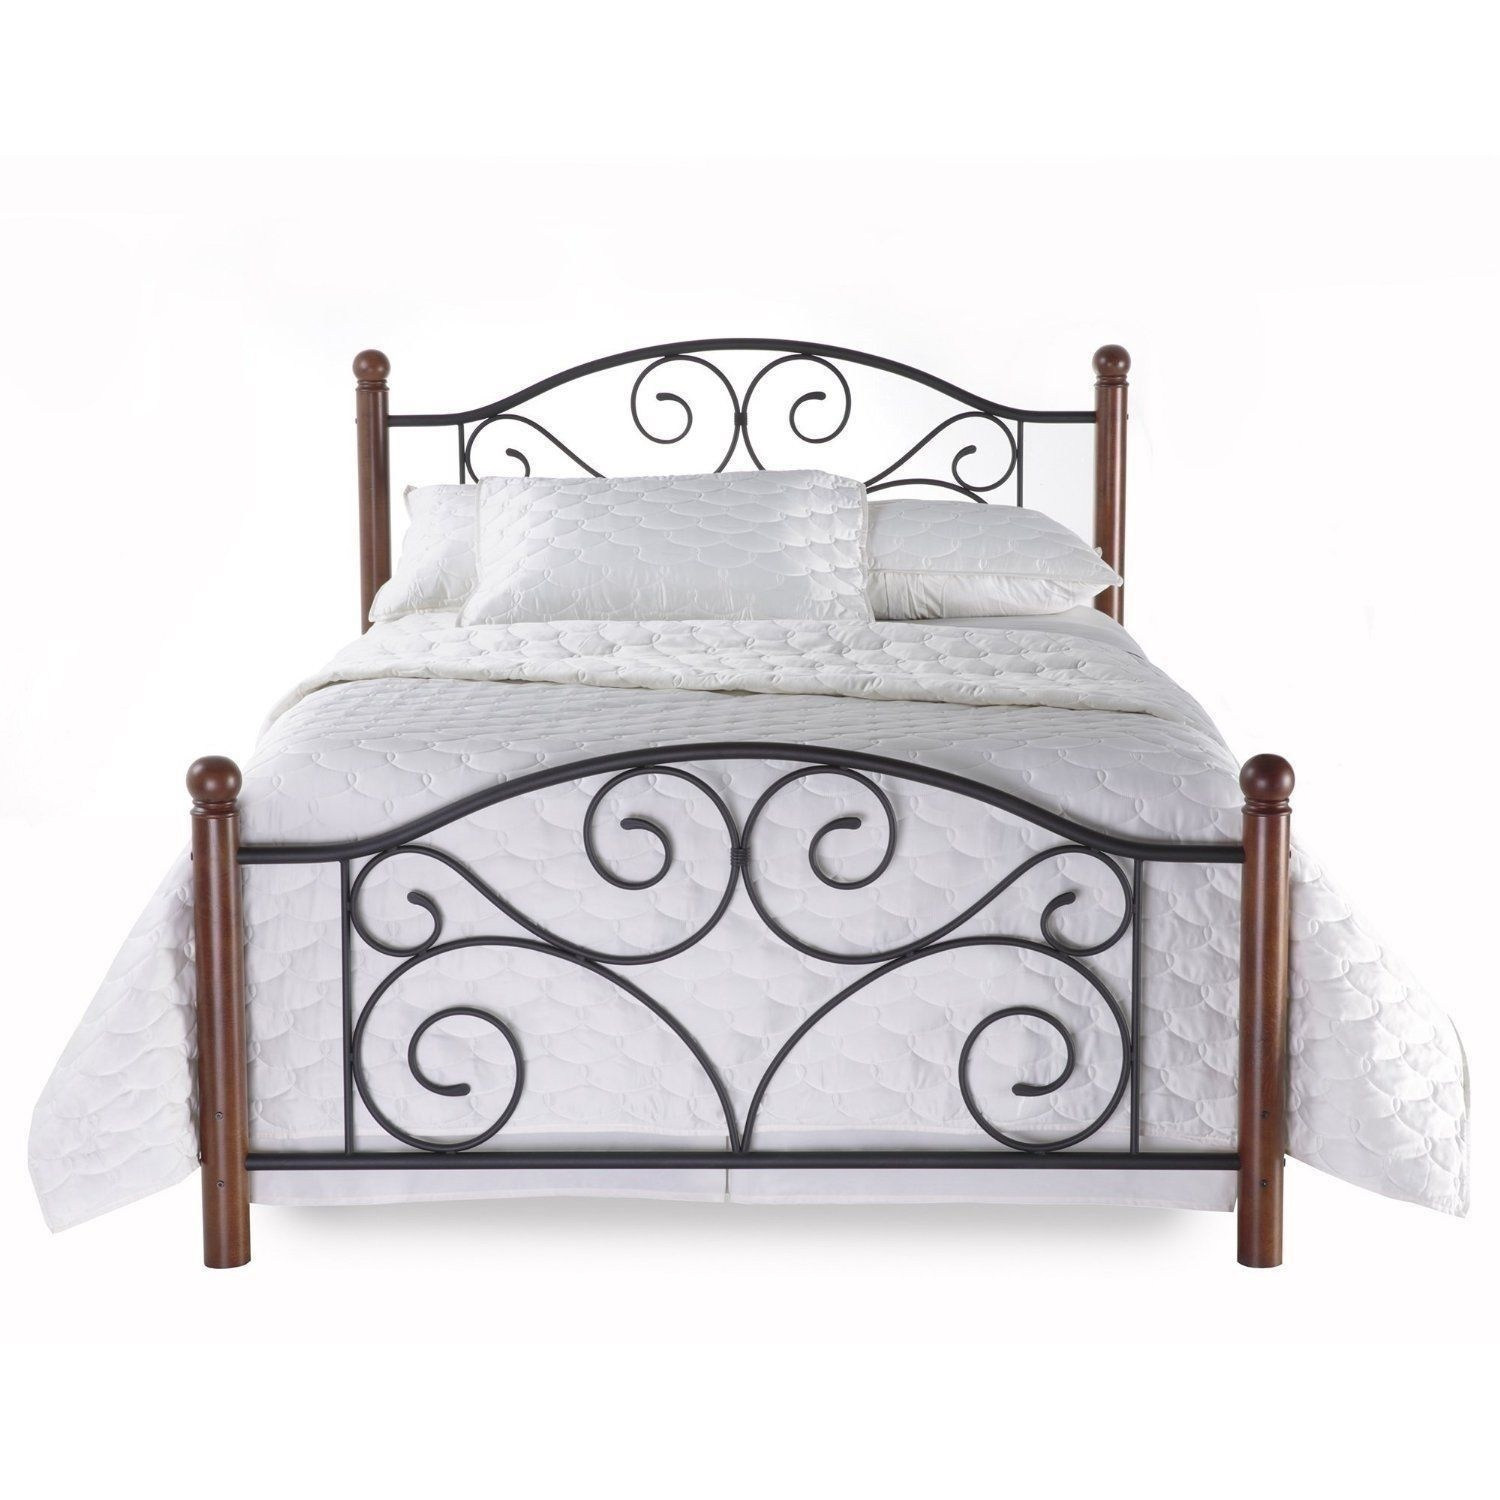 New full queen king size metal wood mattress bed frame for King size headboard